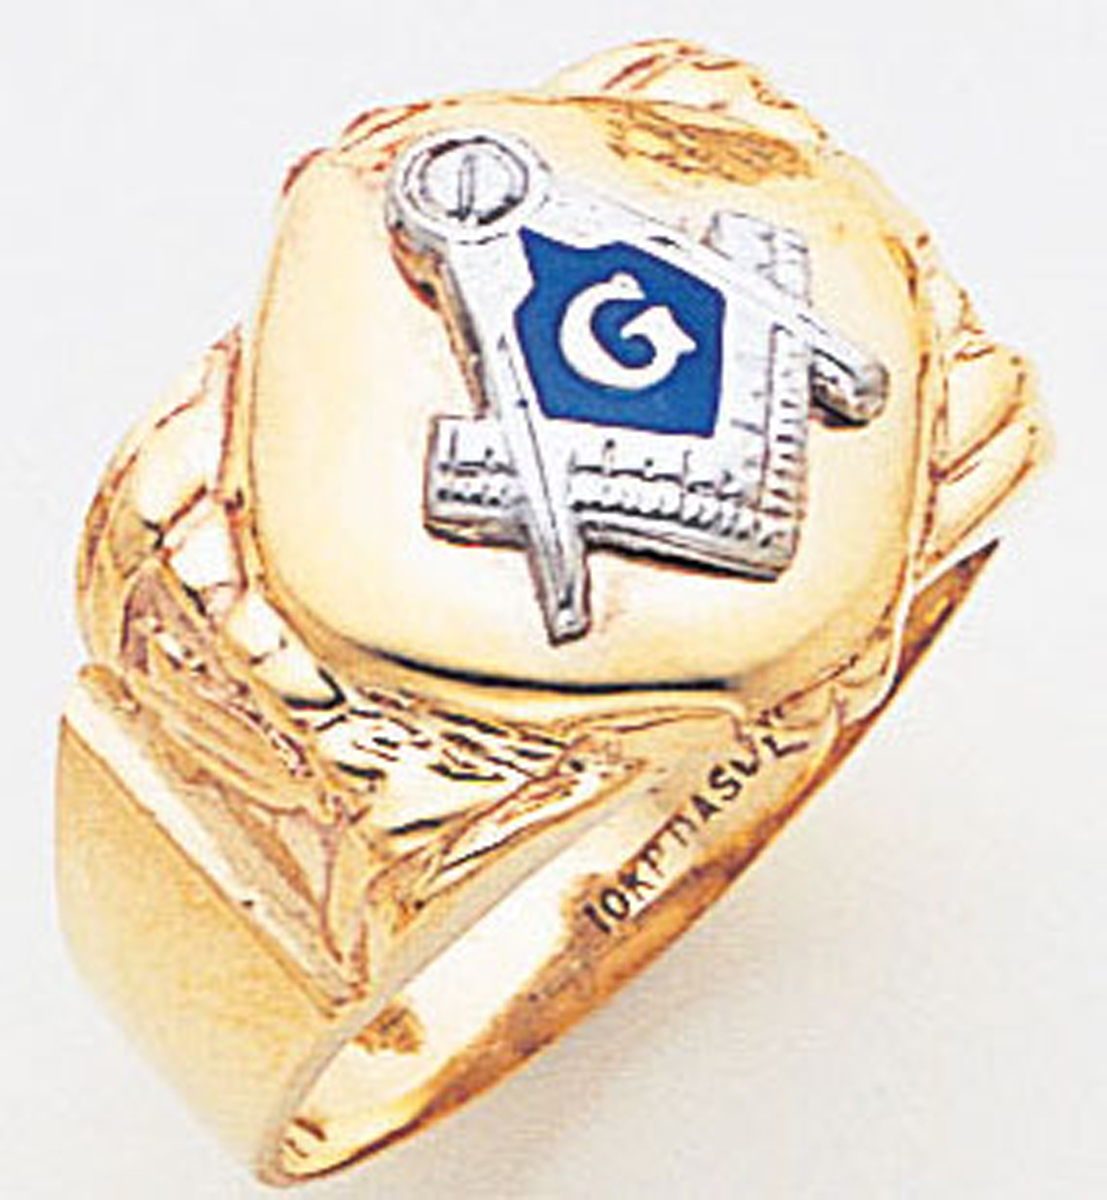 Masonic Ring Macoy Masonic Supplies 3126